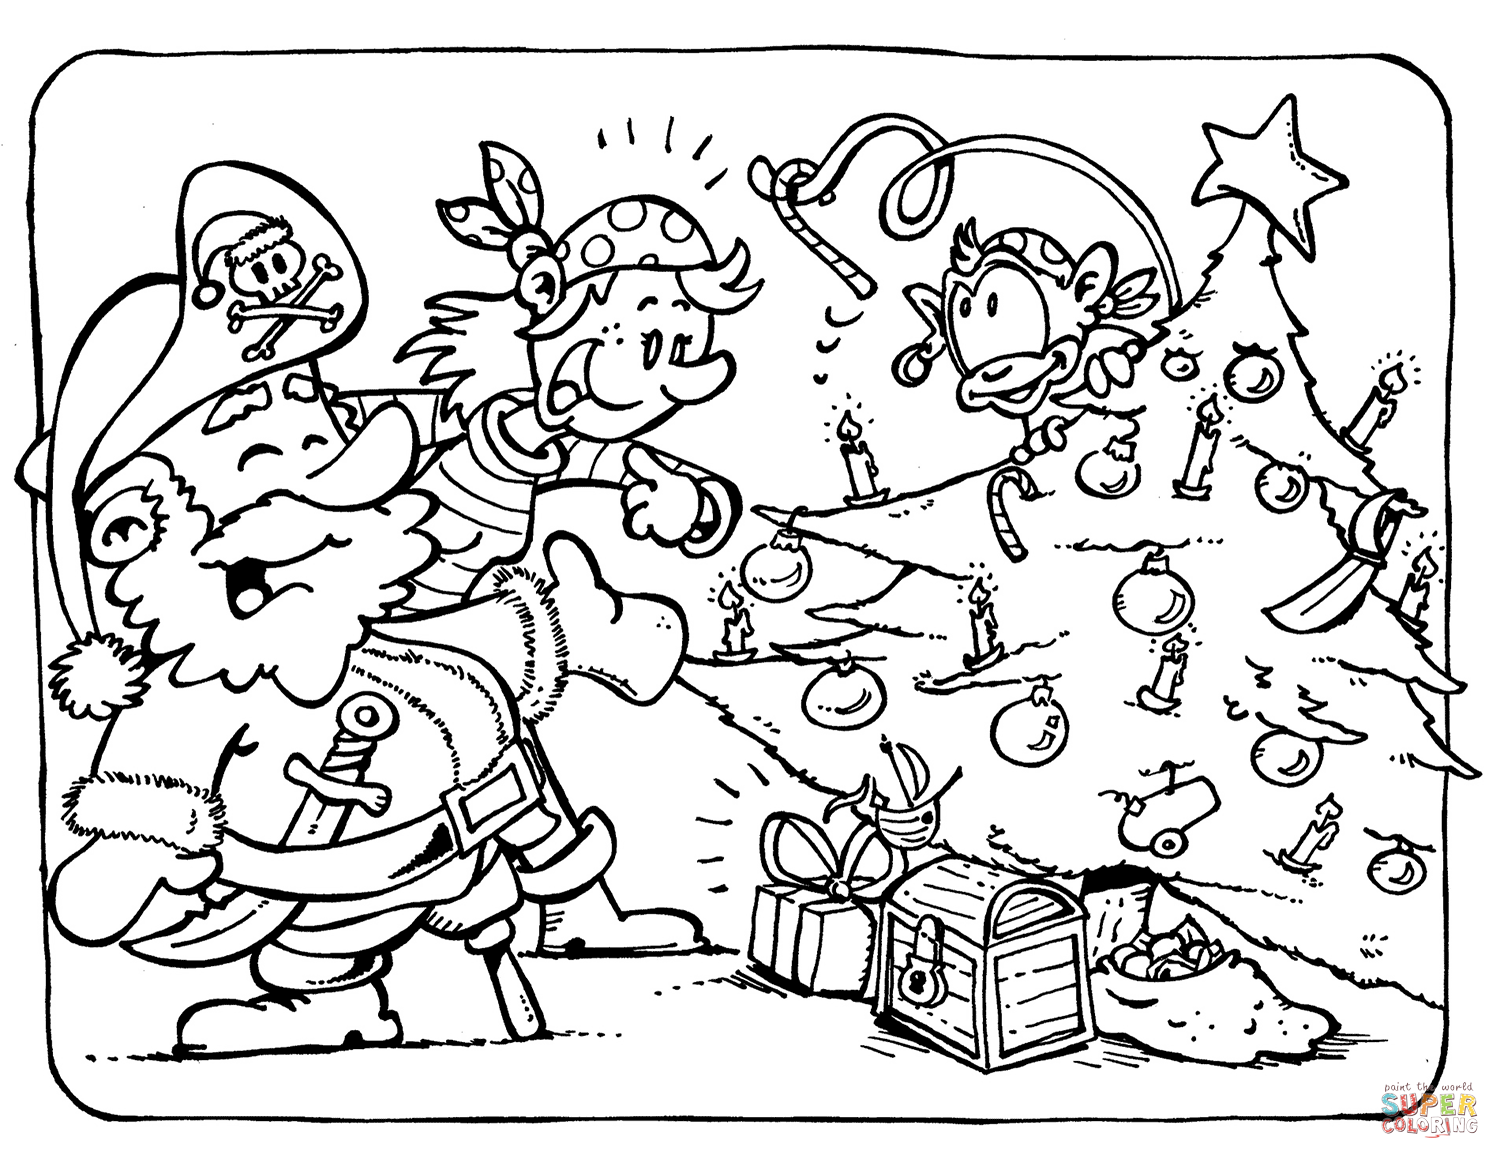 Christmas Coloring Pages Supercoloring With Pirates Celebrate Page Free Printable